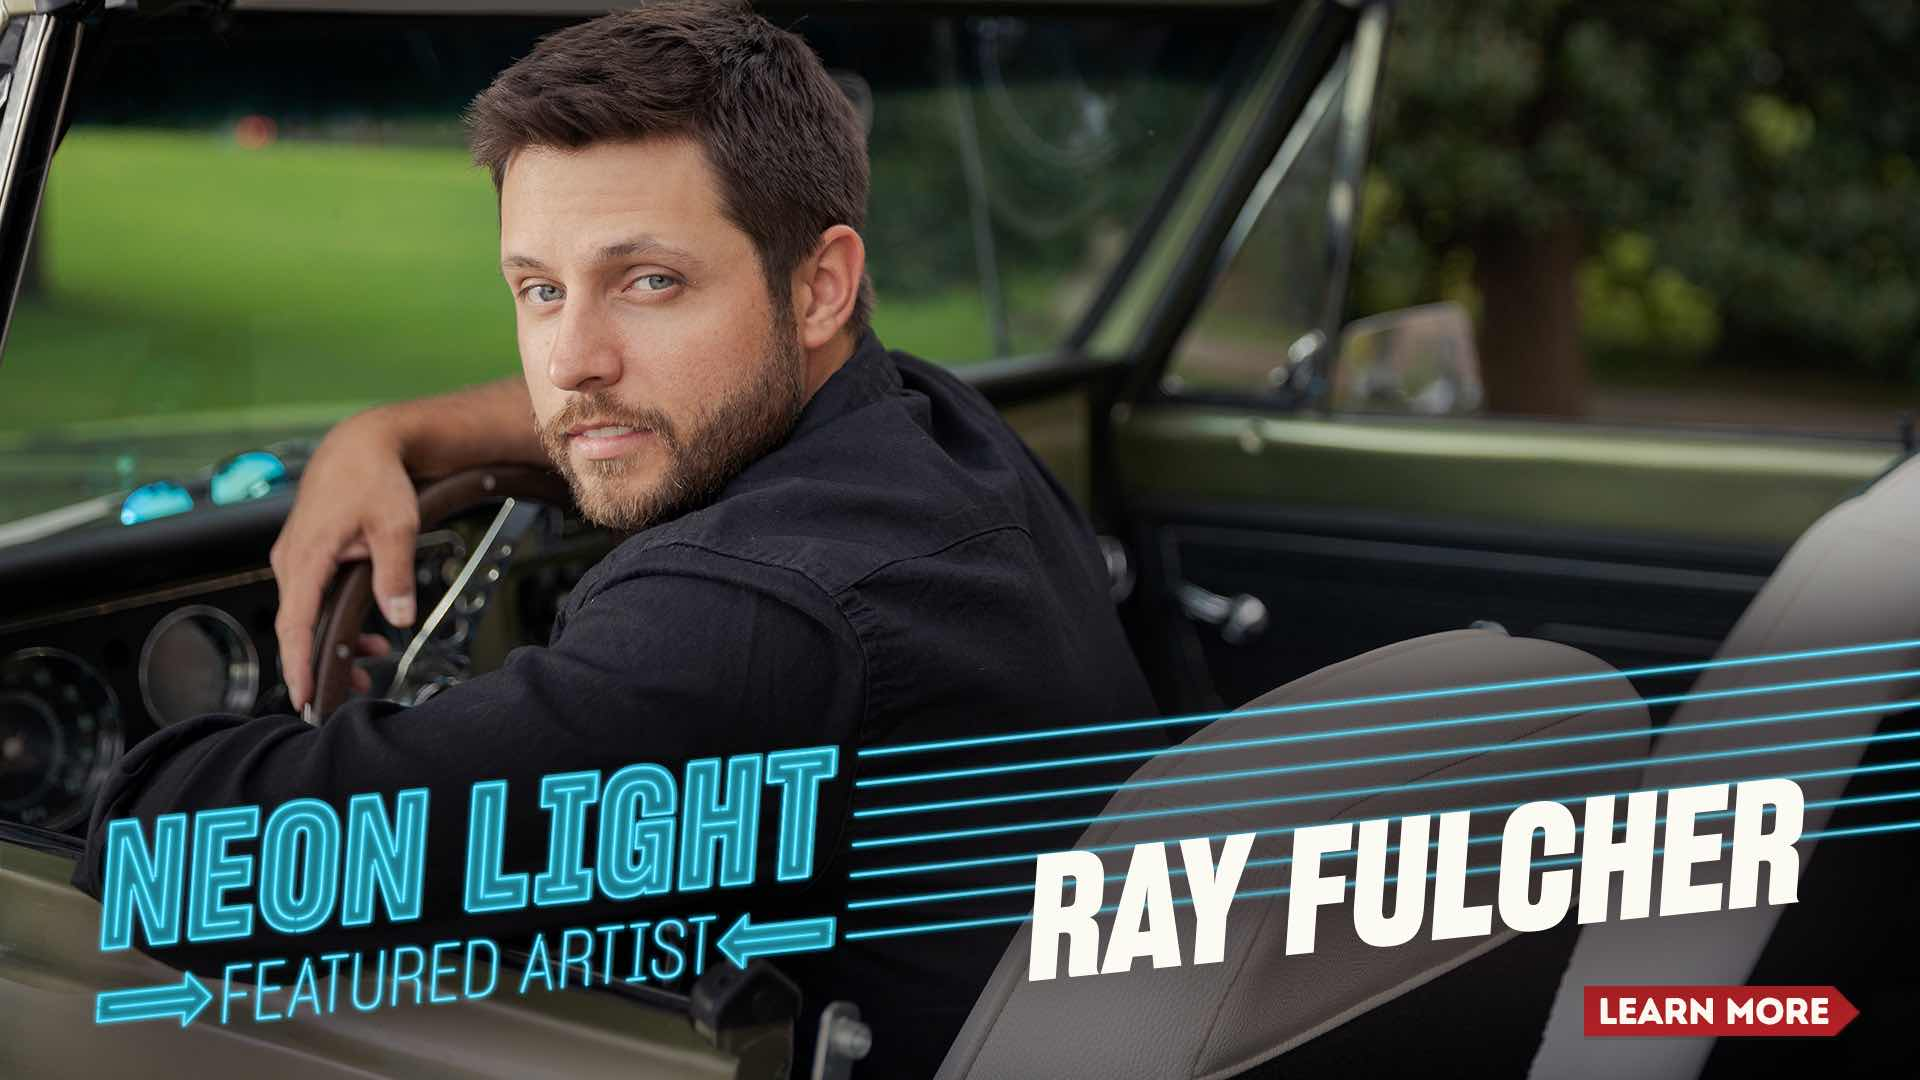 Ray Fulcher - Neon Light Featured Artist - Click to Learn More